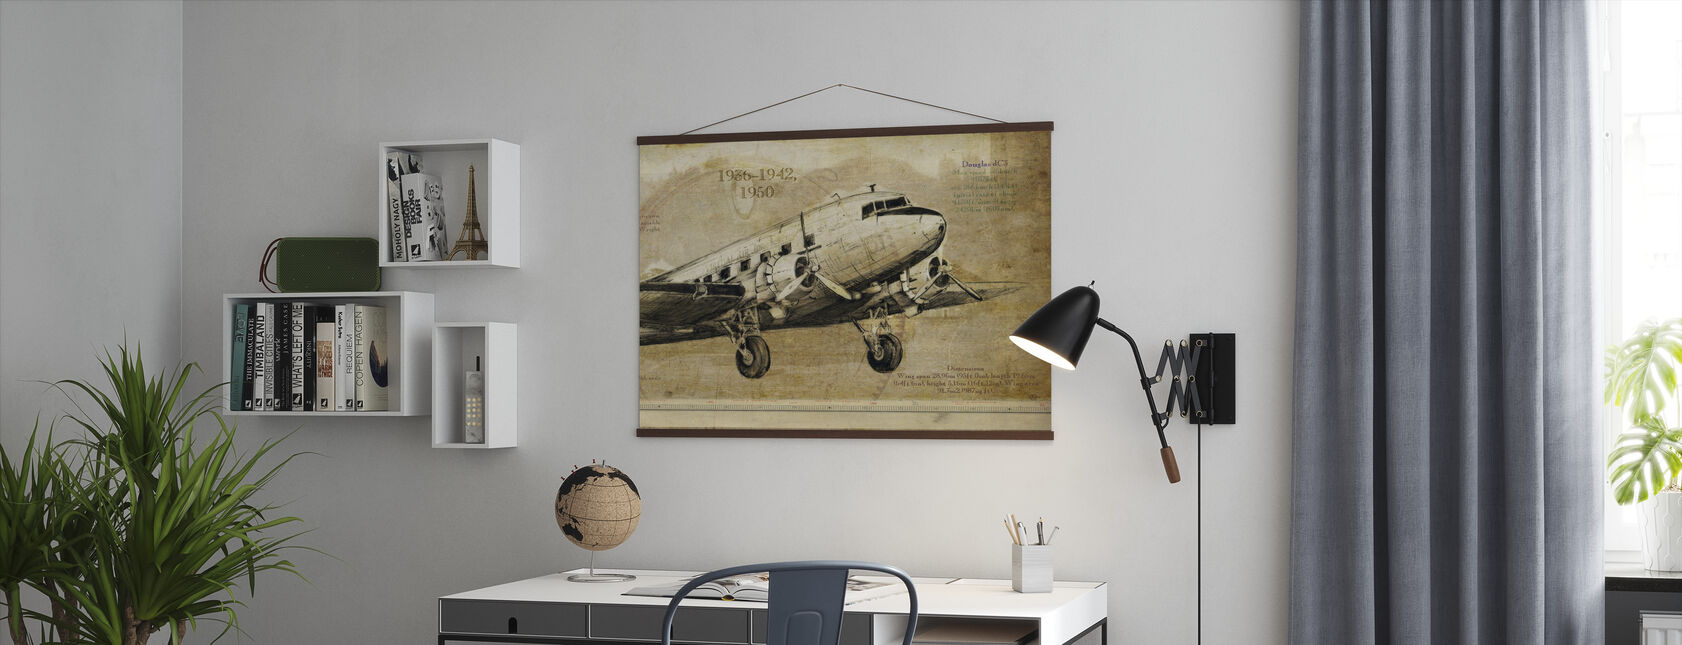 Airplane - Poster - Office